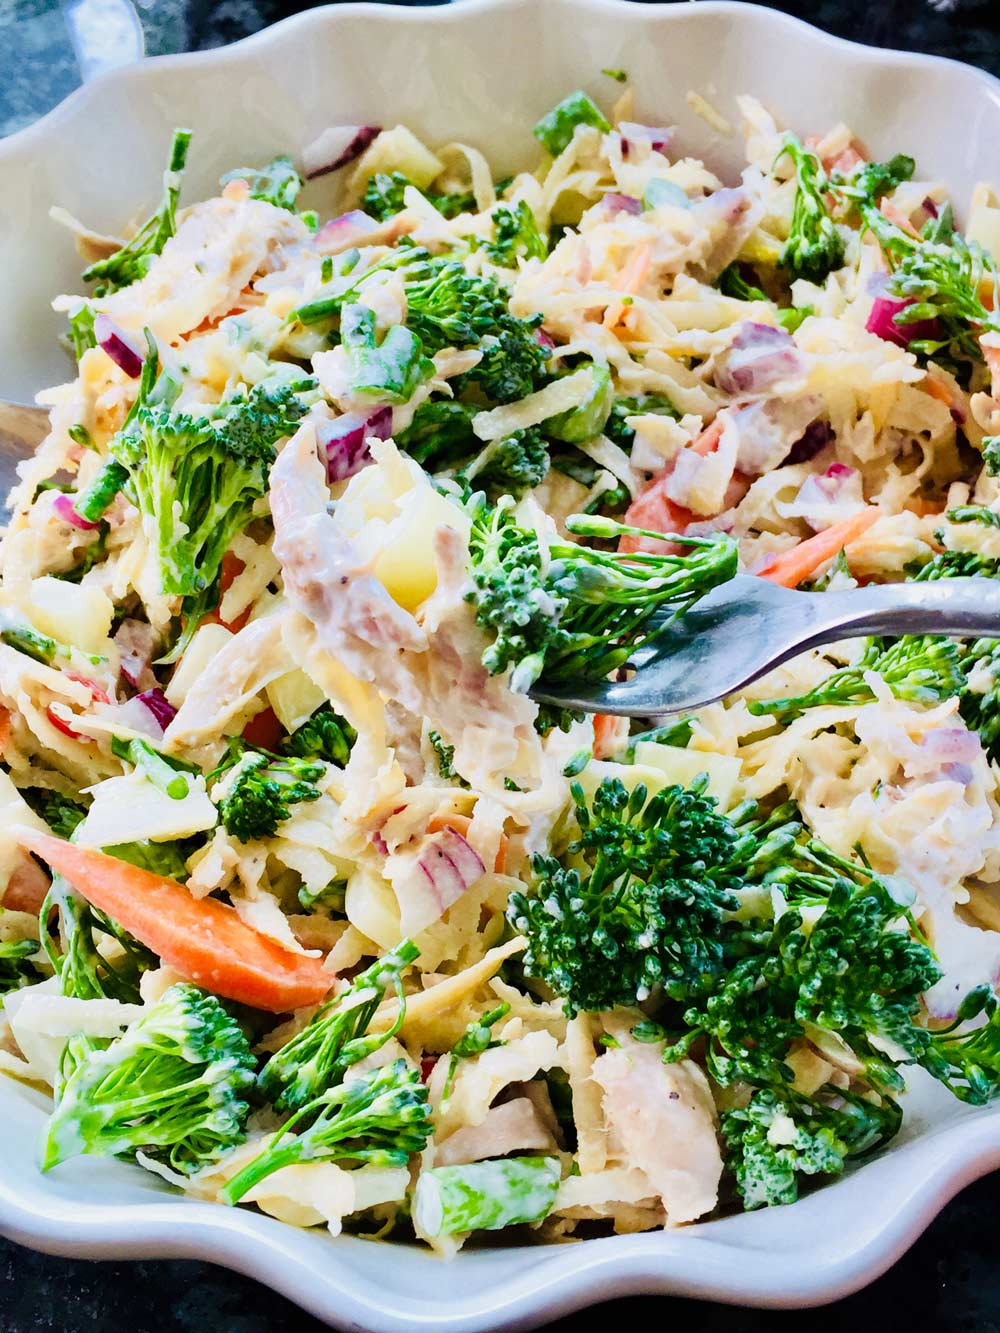 Swede, raw broccolini and chicken salad